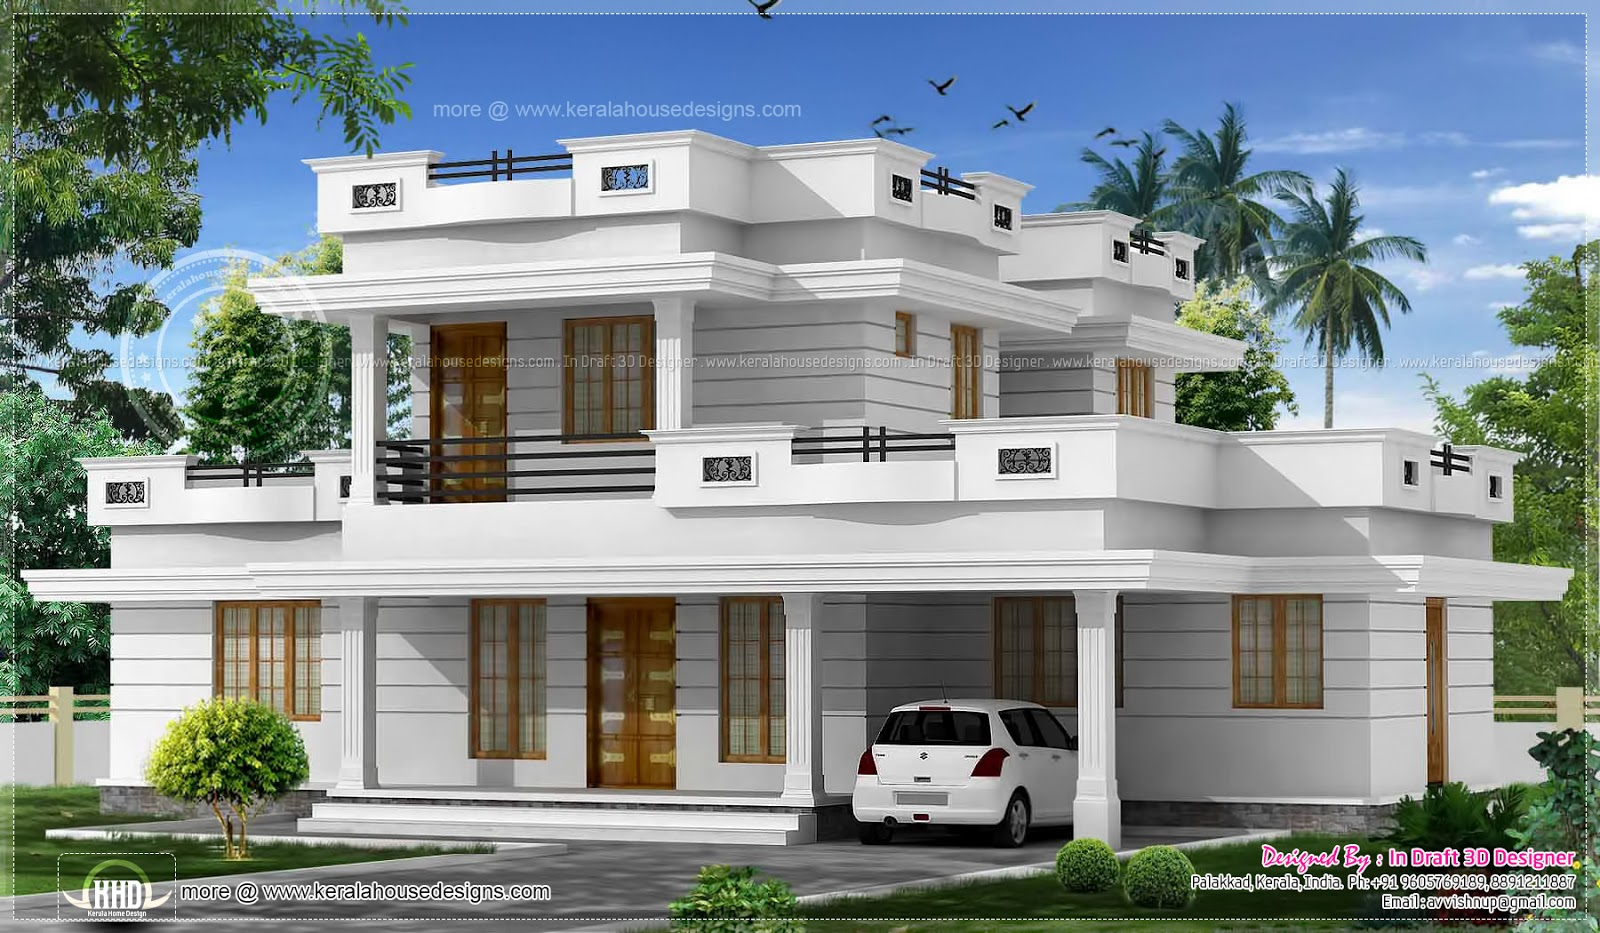 3 bed room flat roof villa with courtyard 2172 sq ft for Three bedroom house plans kerala style